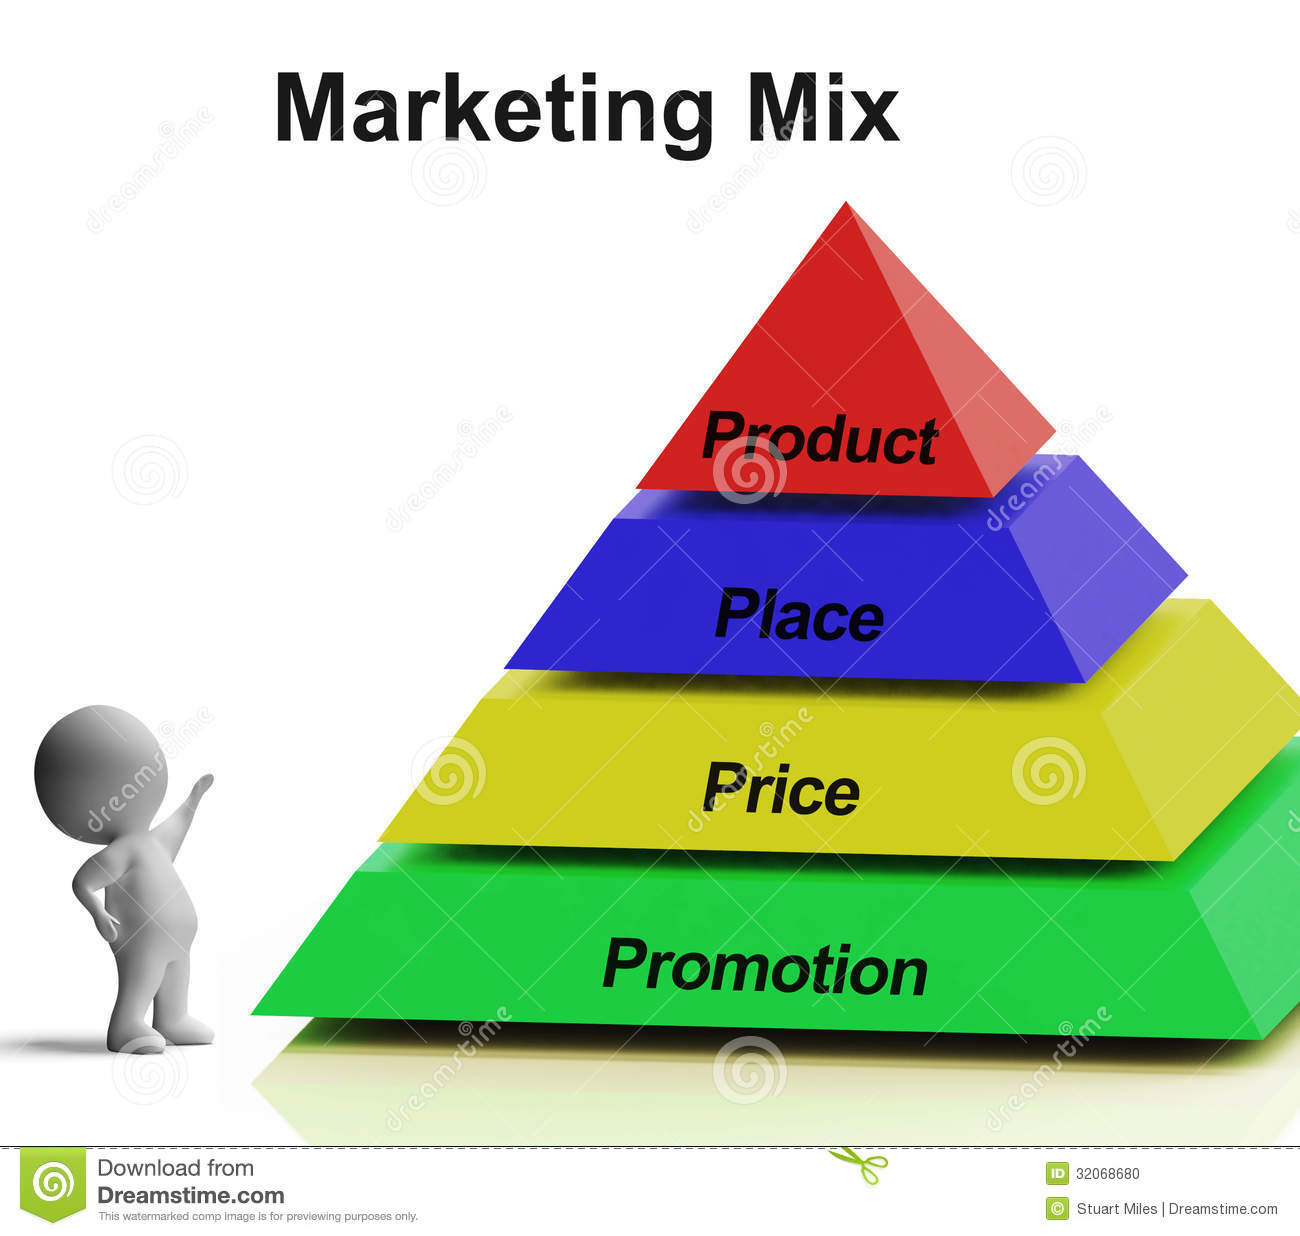 marketing-mix-pyramid-showing-place-price-product-promotions-shows-32068680.jpg